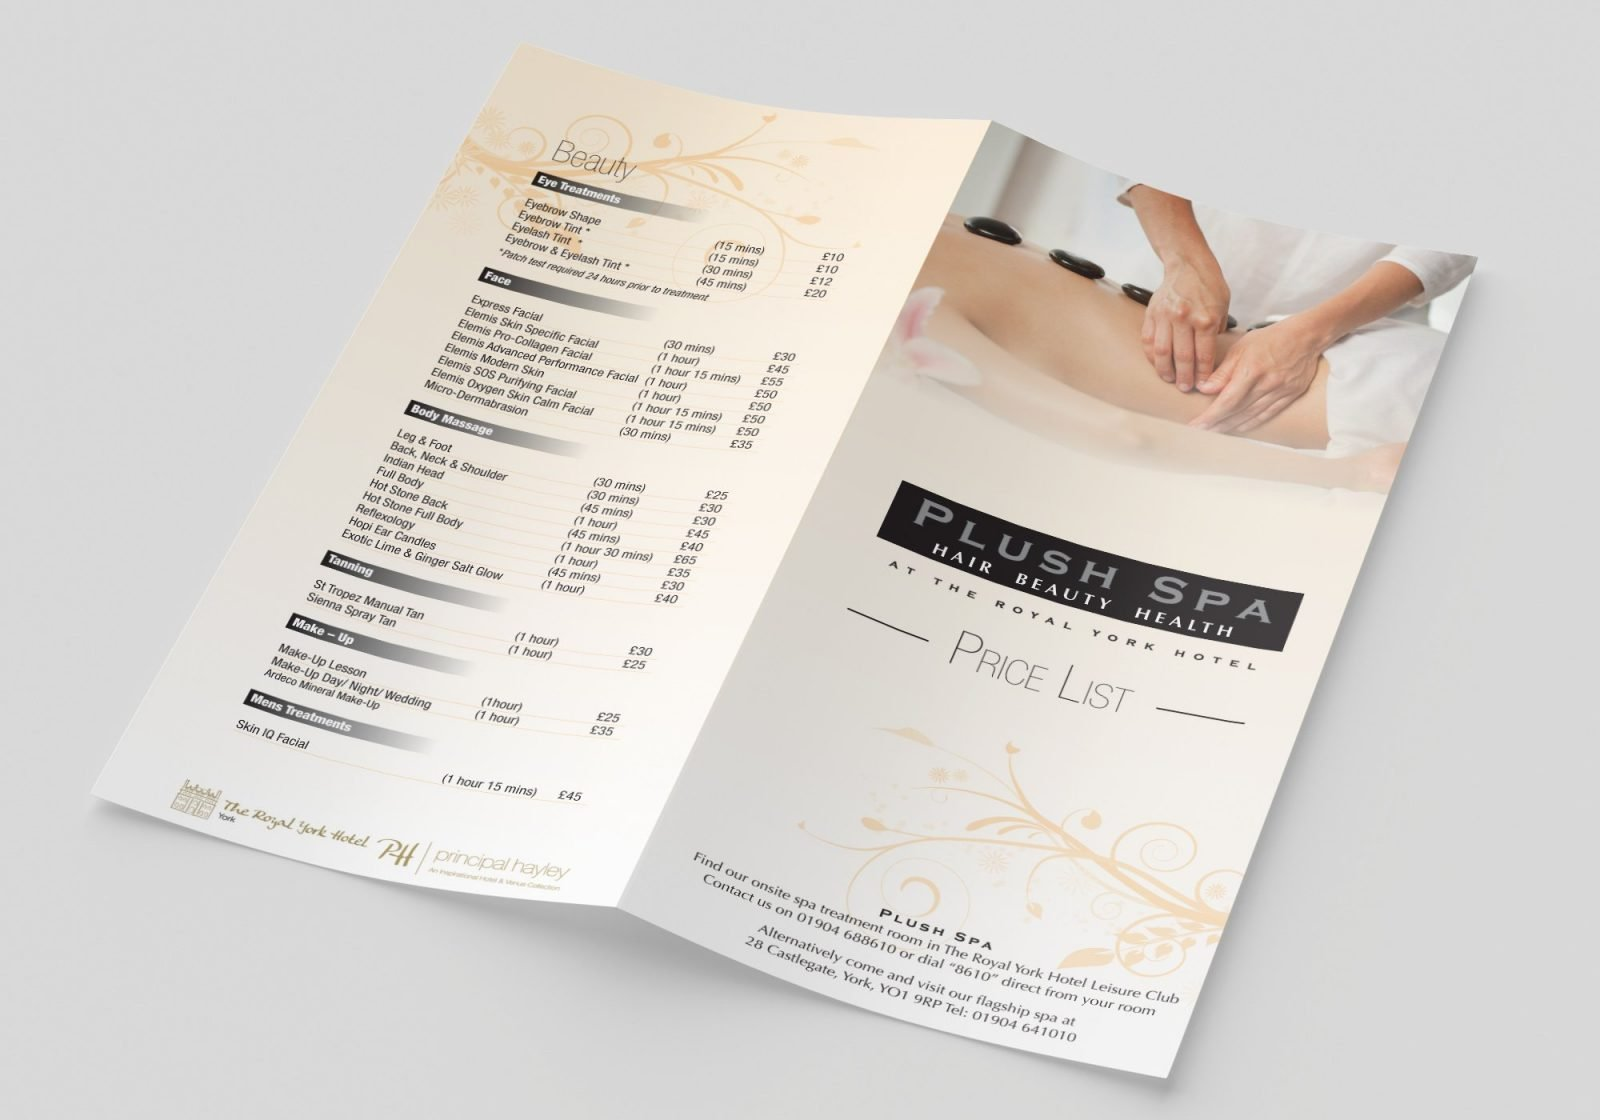 A Folded A4 Leaflet for Push Spa Hair dressers showing the front and back pages